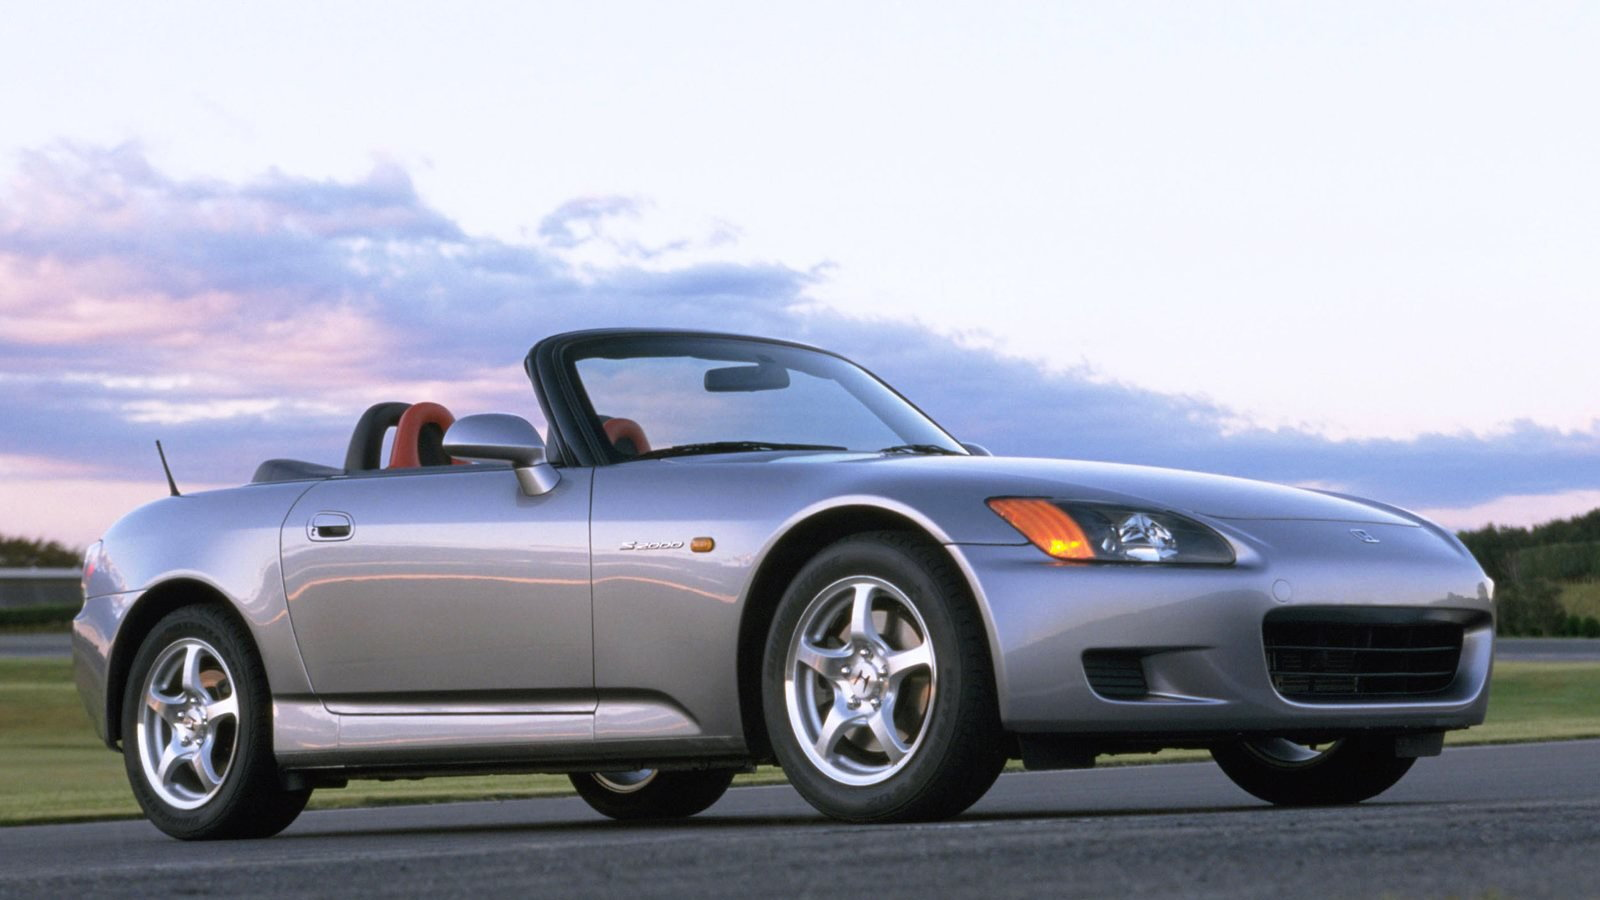 So Why Was the S2000 Discontinued Anyway?